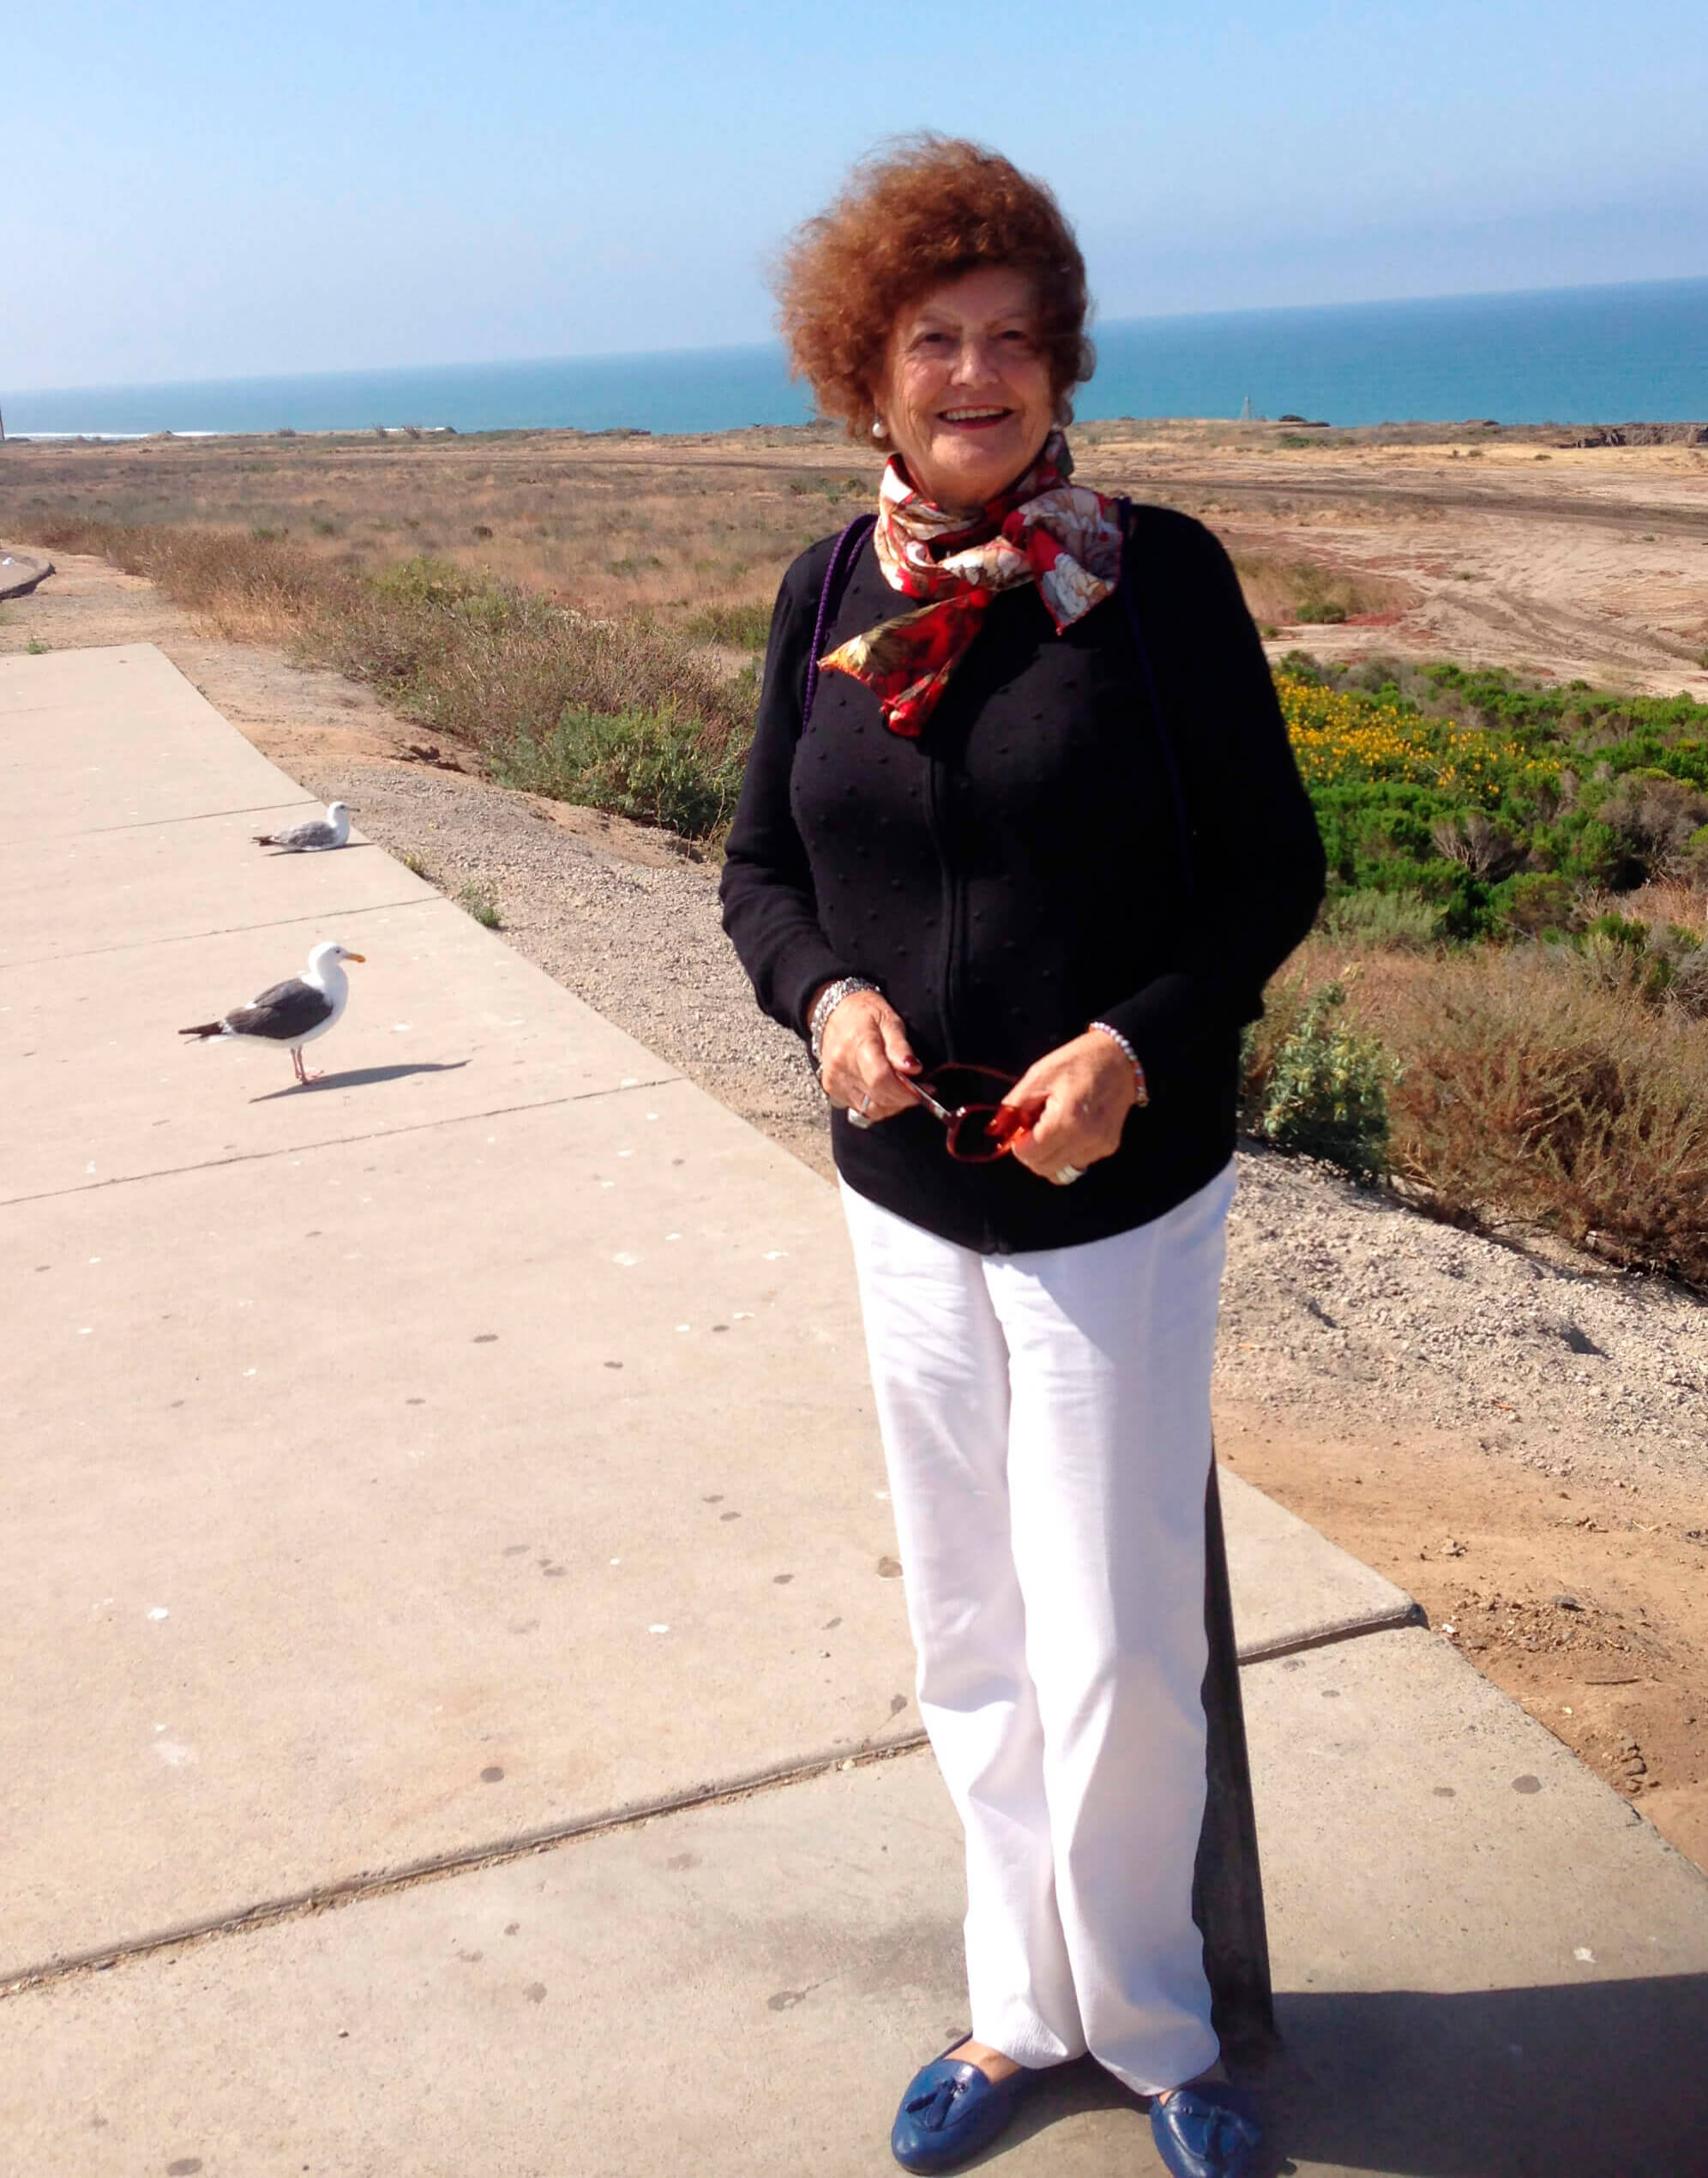 My mother Ana in California, USA 2011, aged 7